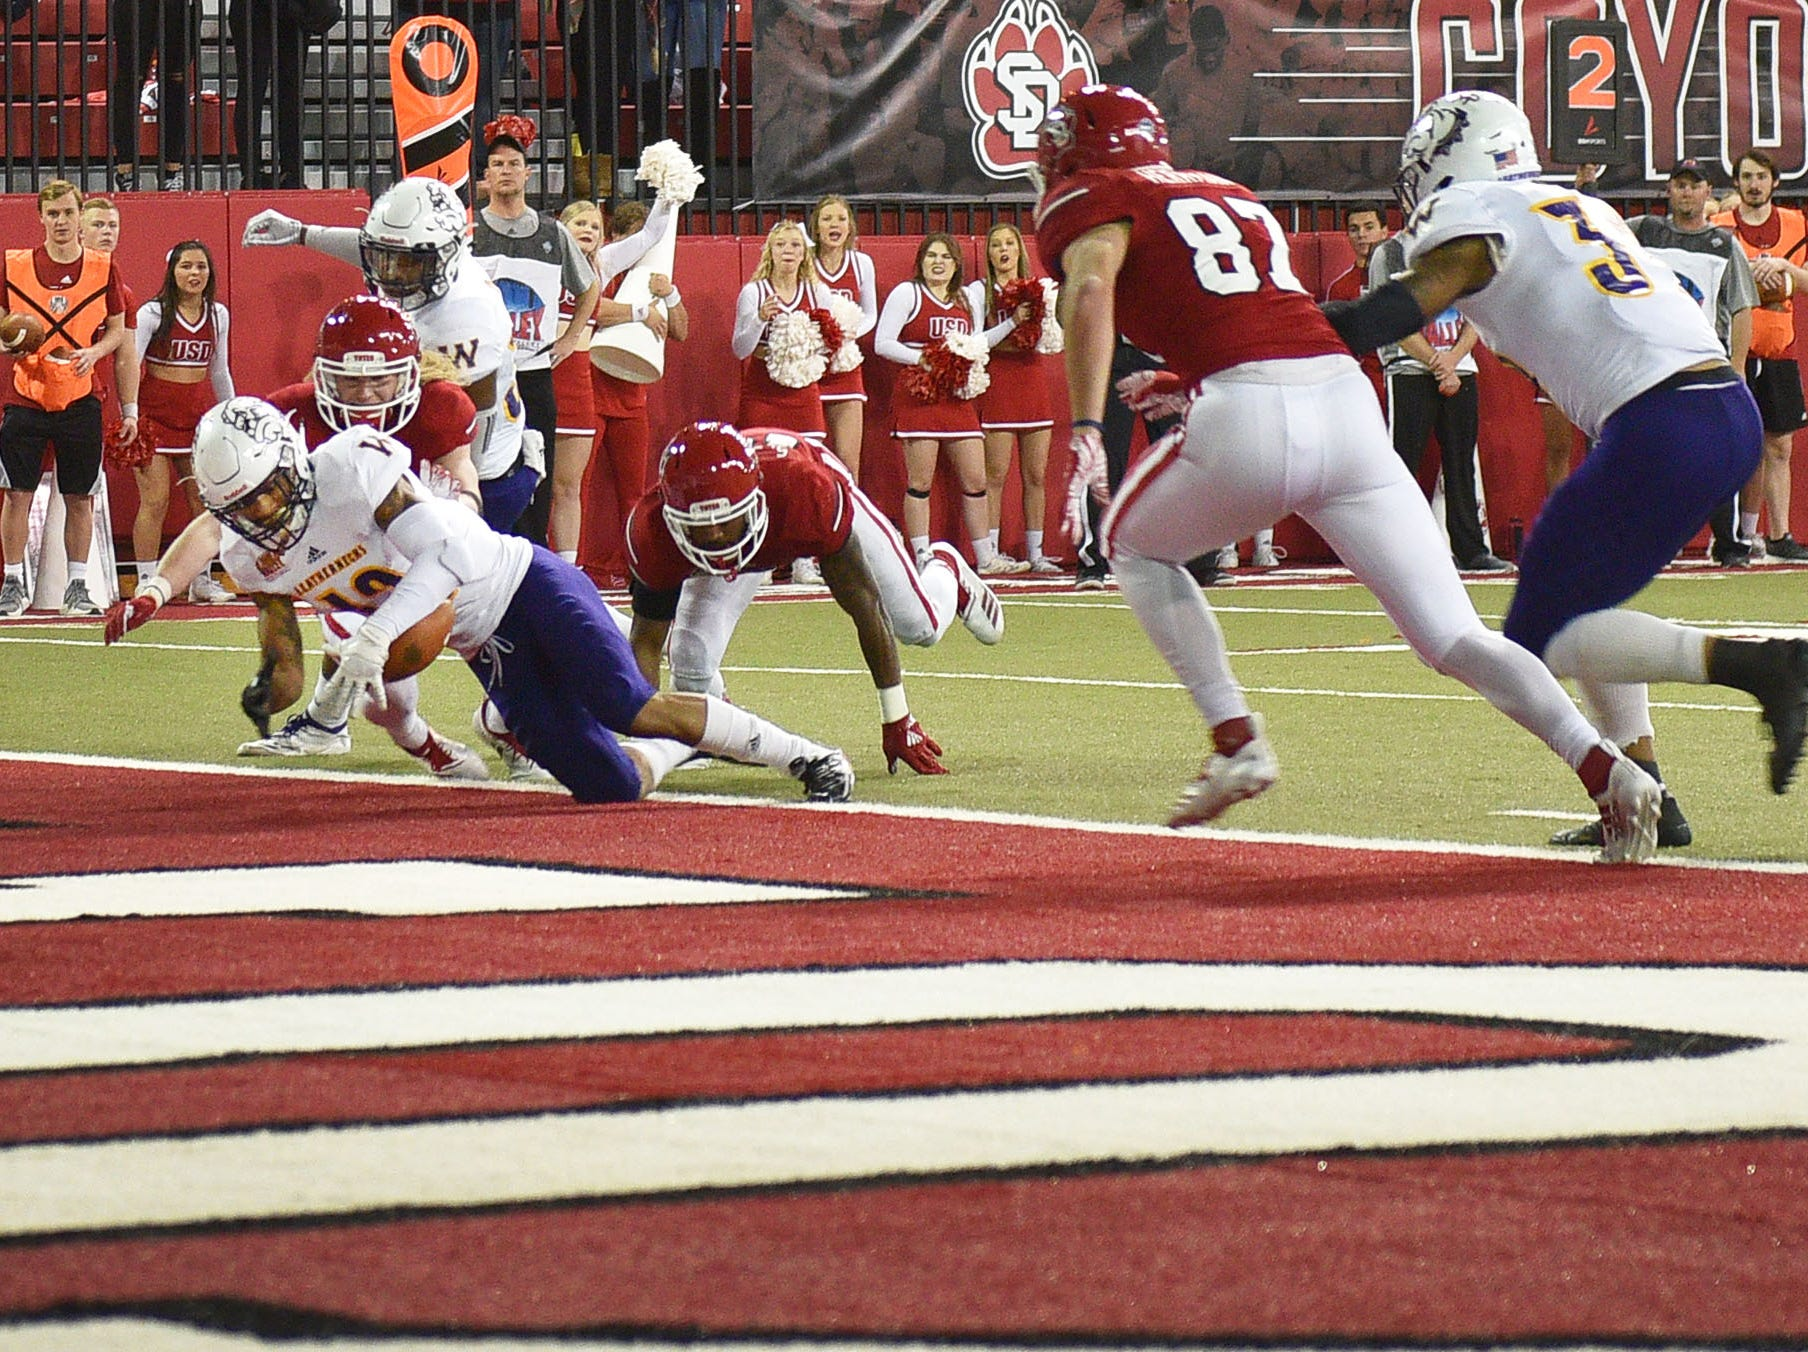 Western Illinois' Darron Wheeler recovers the ball in the end zone during the game against USD Saturday, Nov. 10, at the DakotaDome in Vermillion.